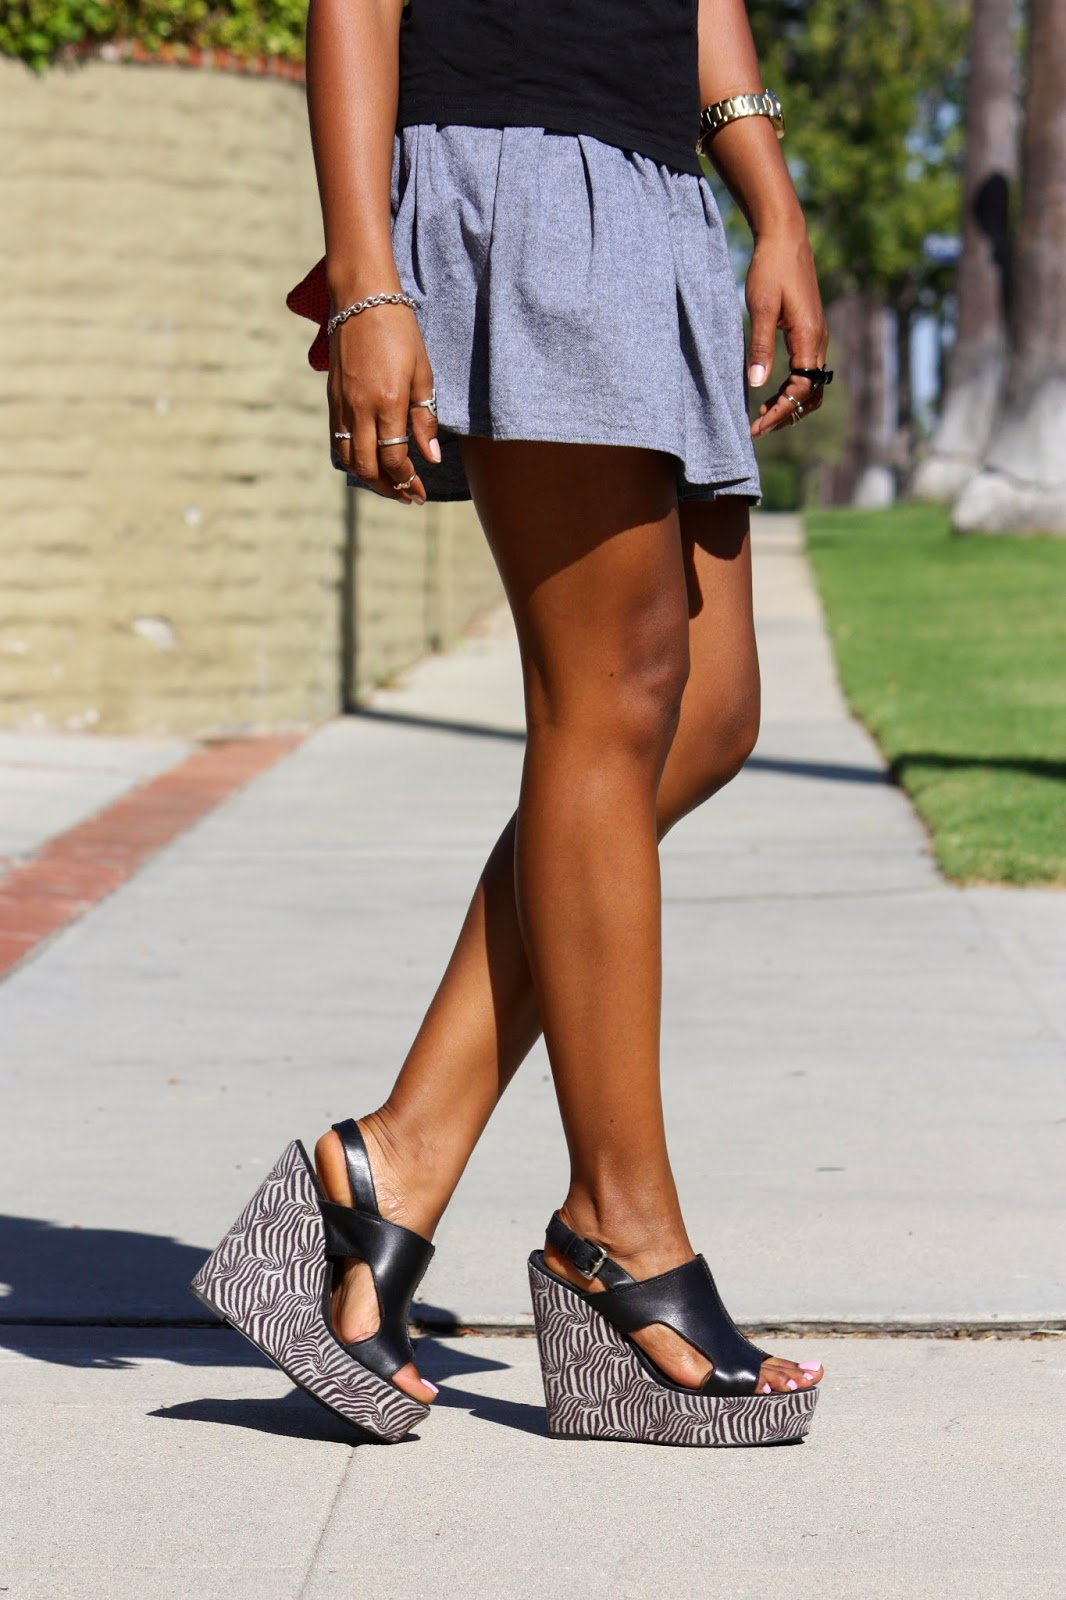 Wearing American Apparel full skirt with Carlos wedges